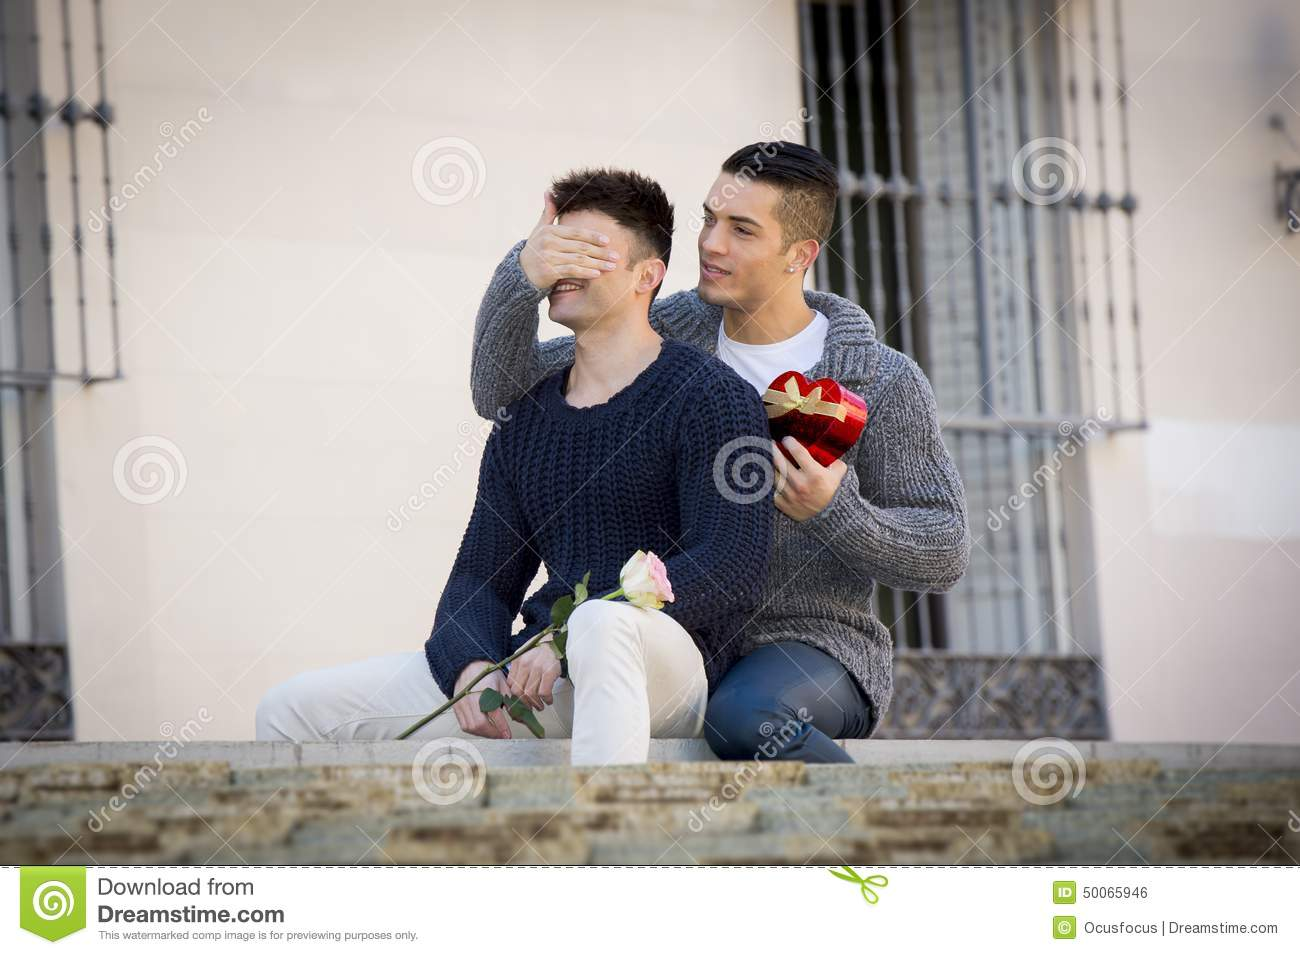 Gifts For Young Men: Young Gay Men Couple With Rose And Box Present Celebrating